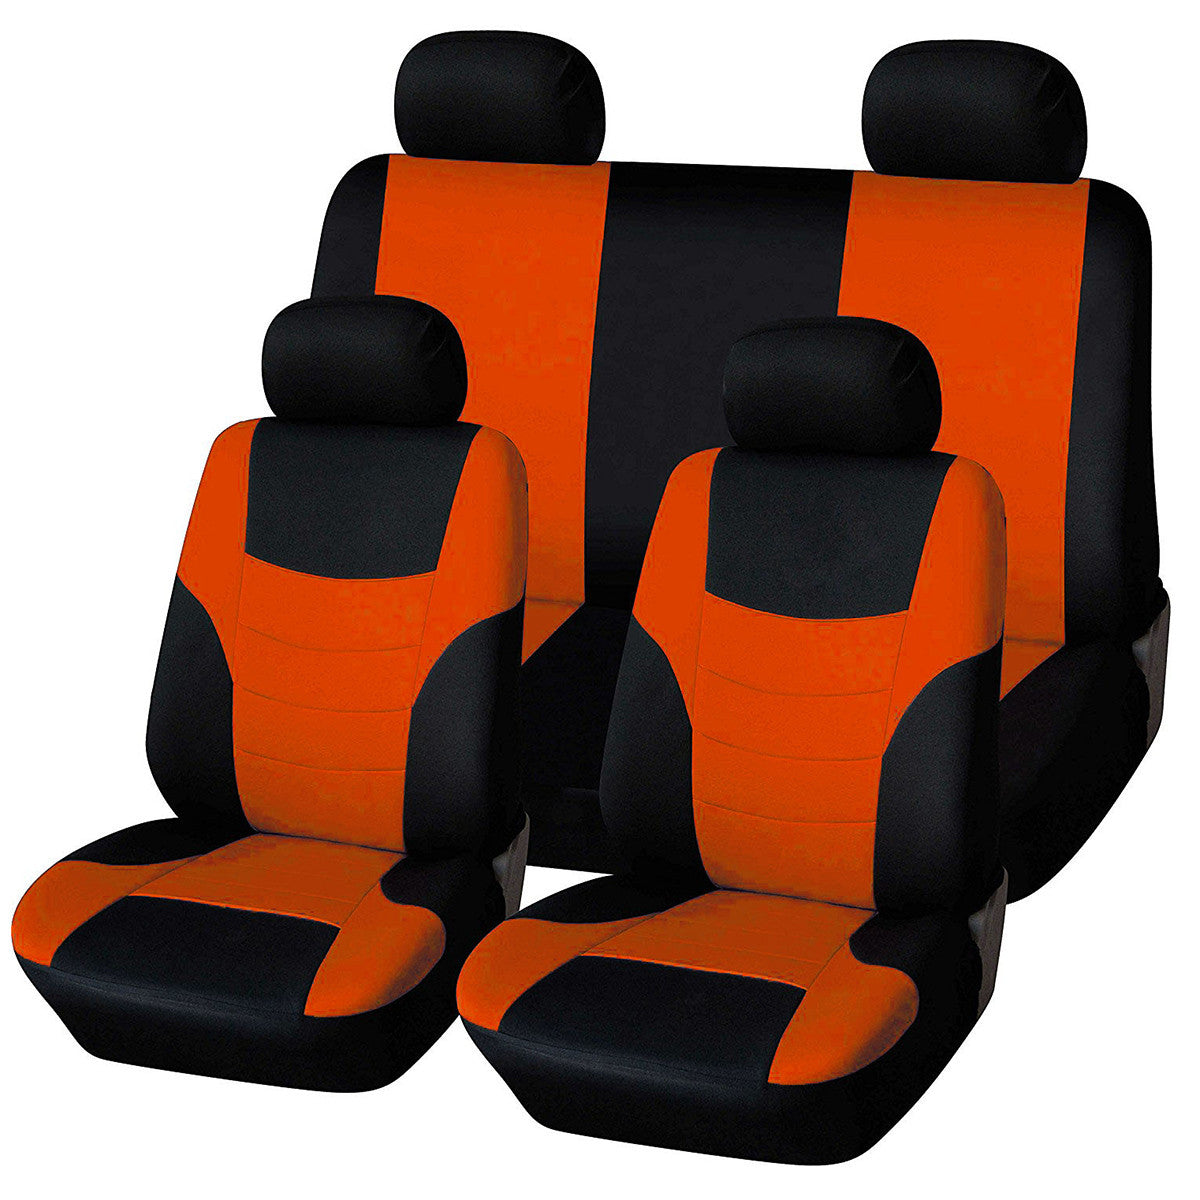 8Pcs Universal Classic Car Seat Cover Protector Styling Covers Set